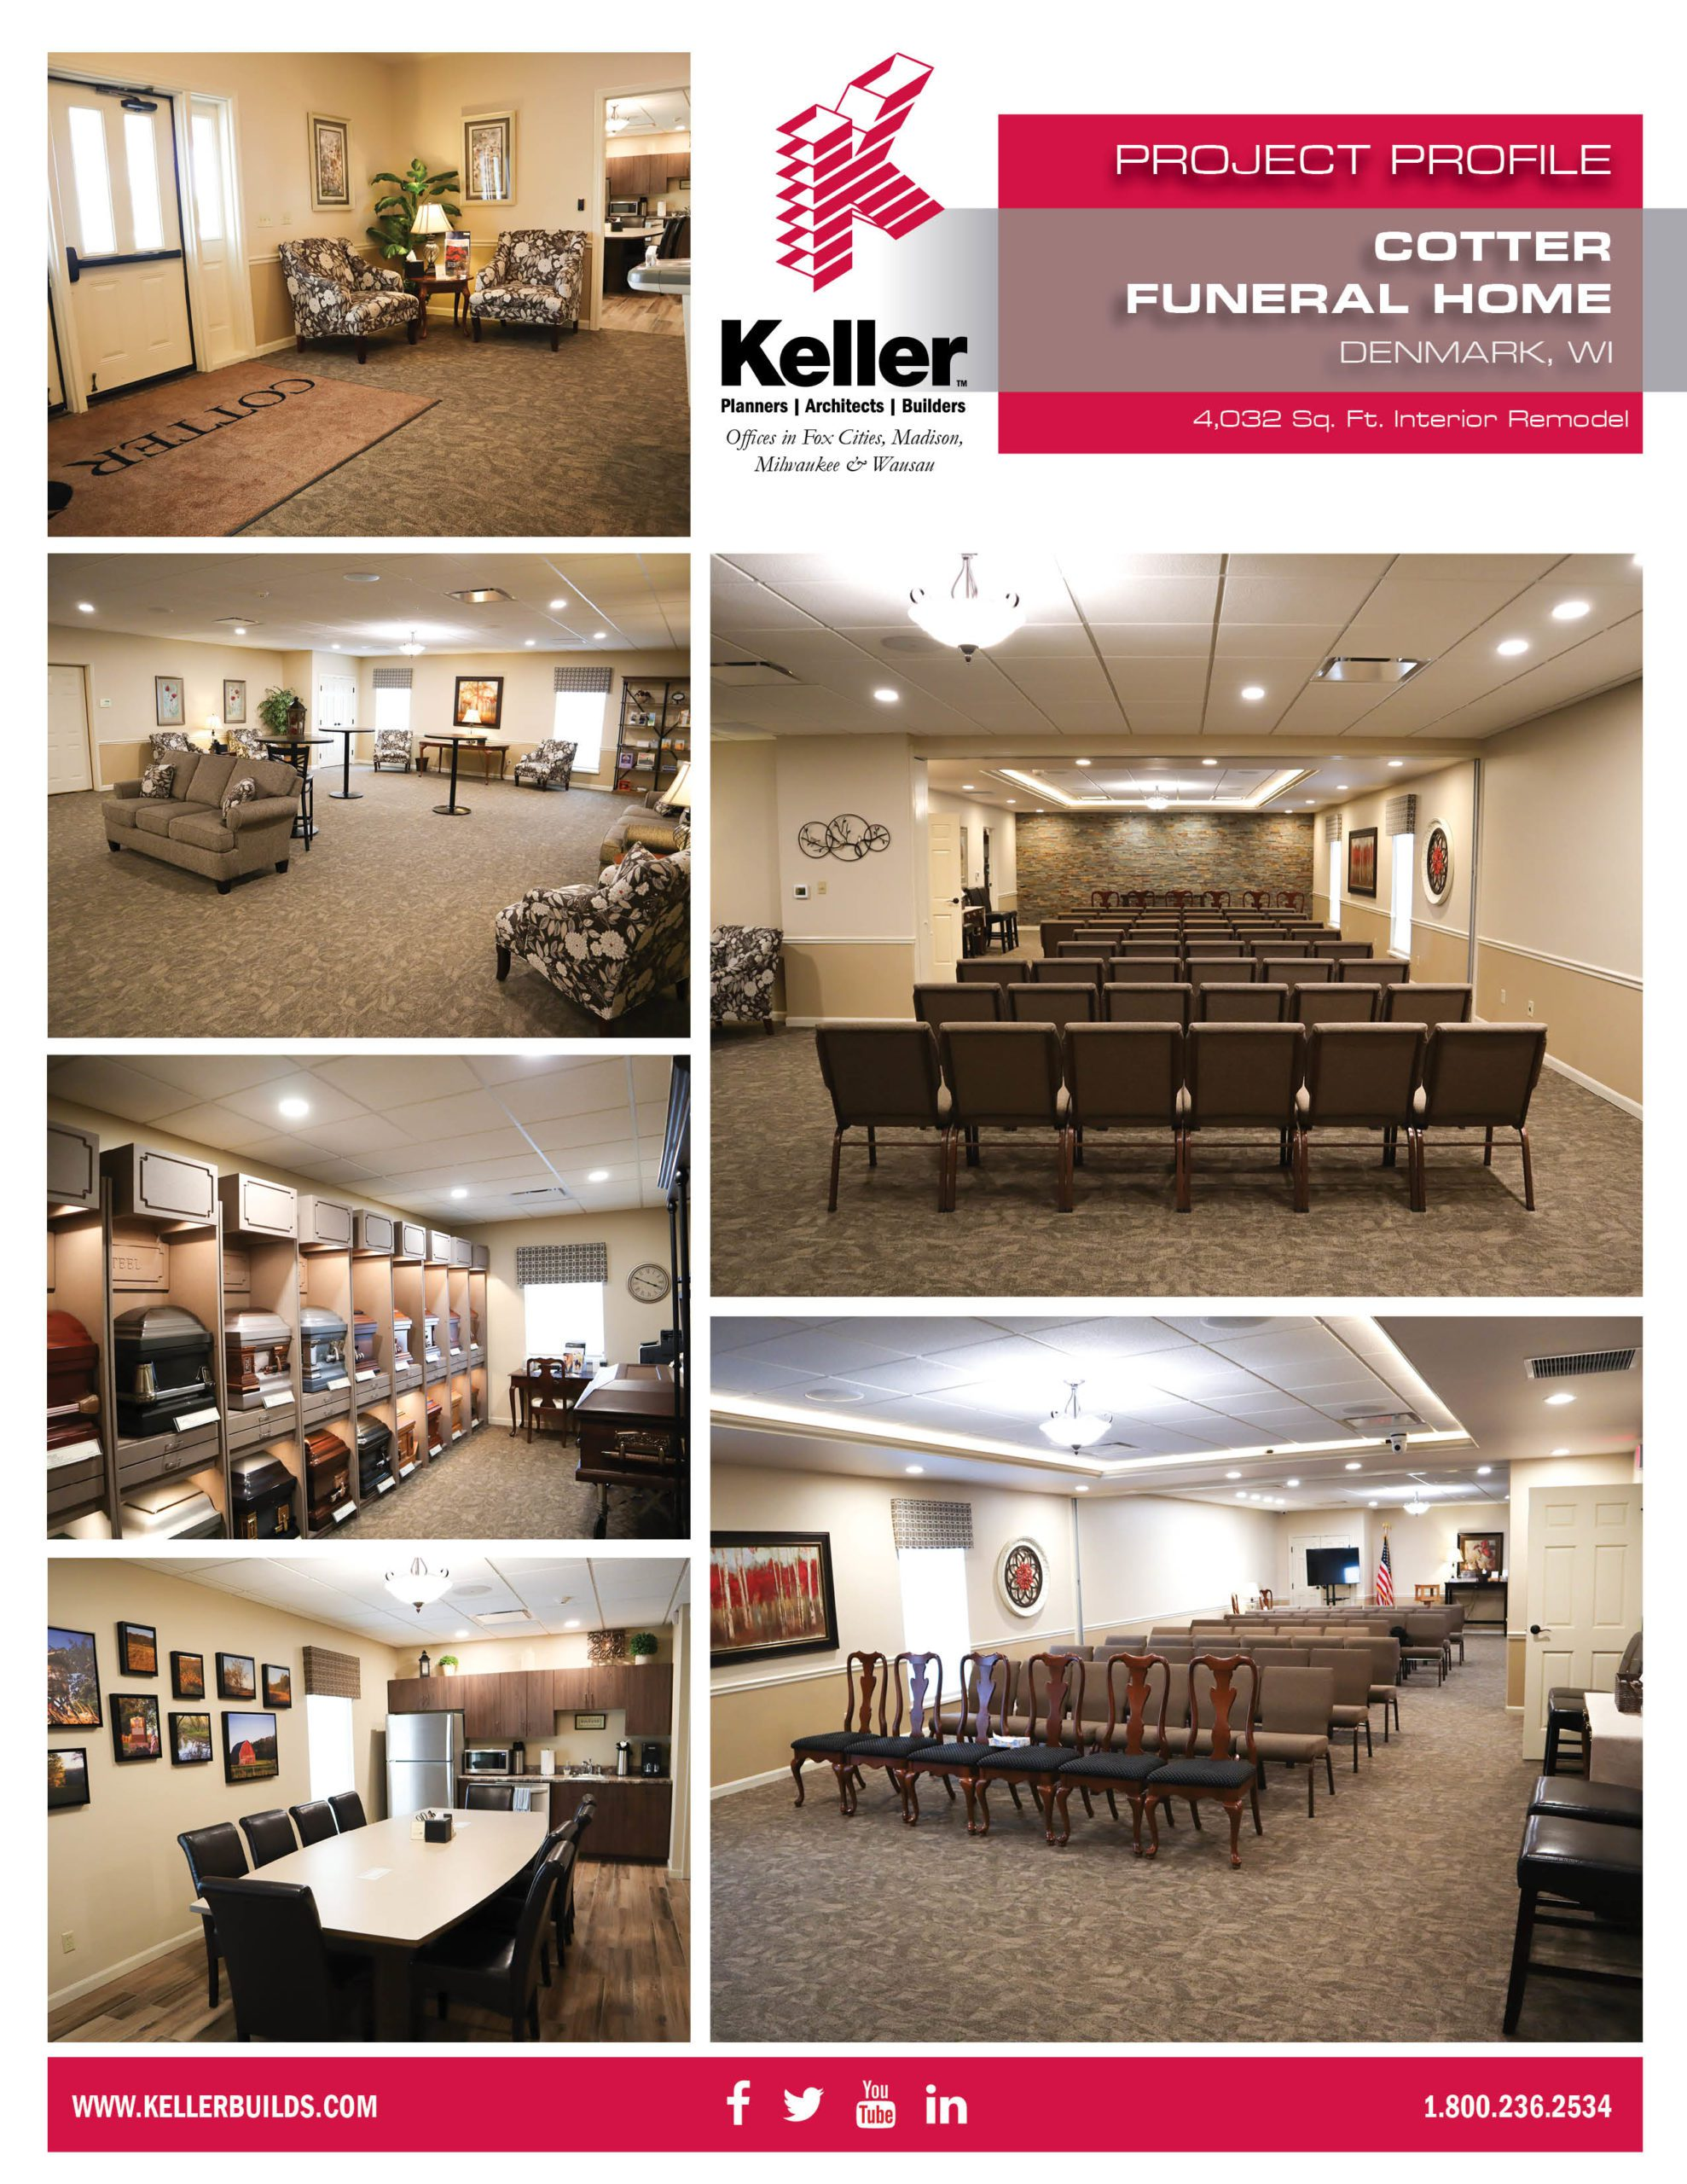 Cotter Funeral Home